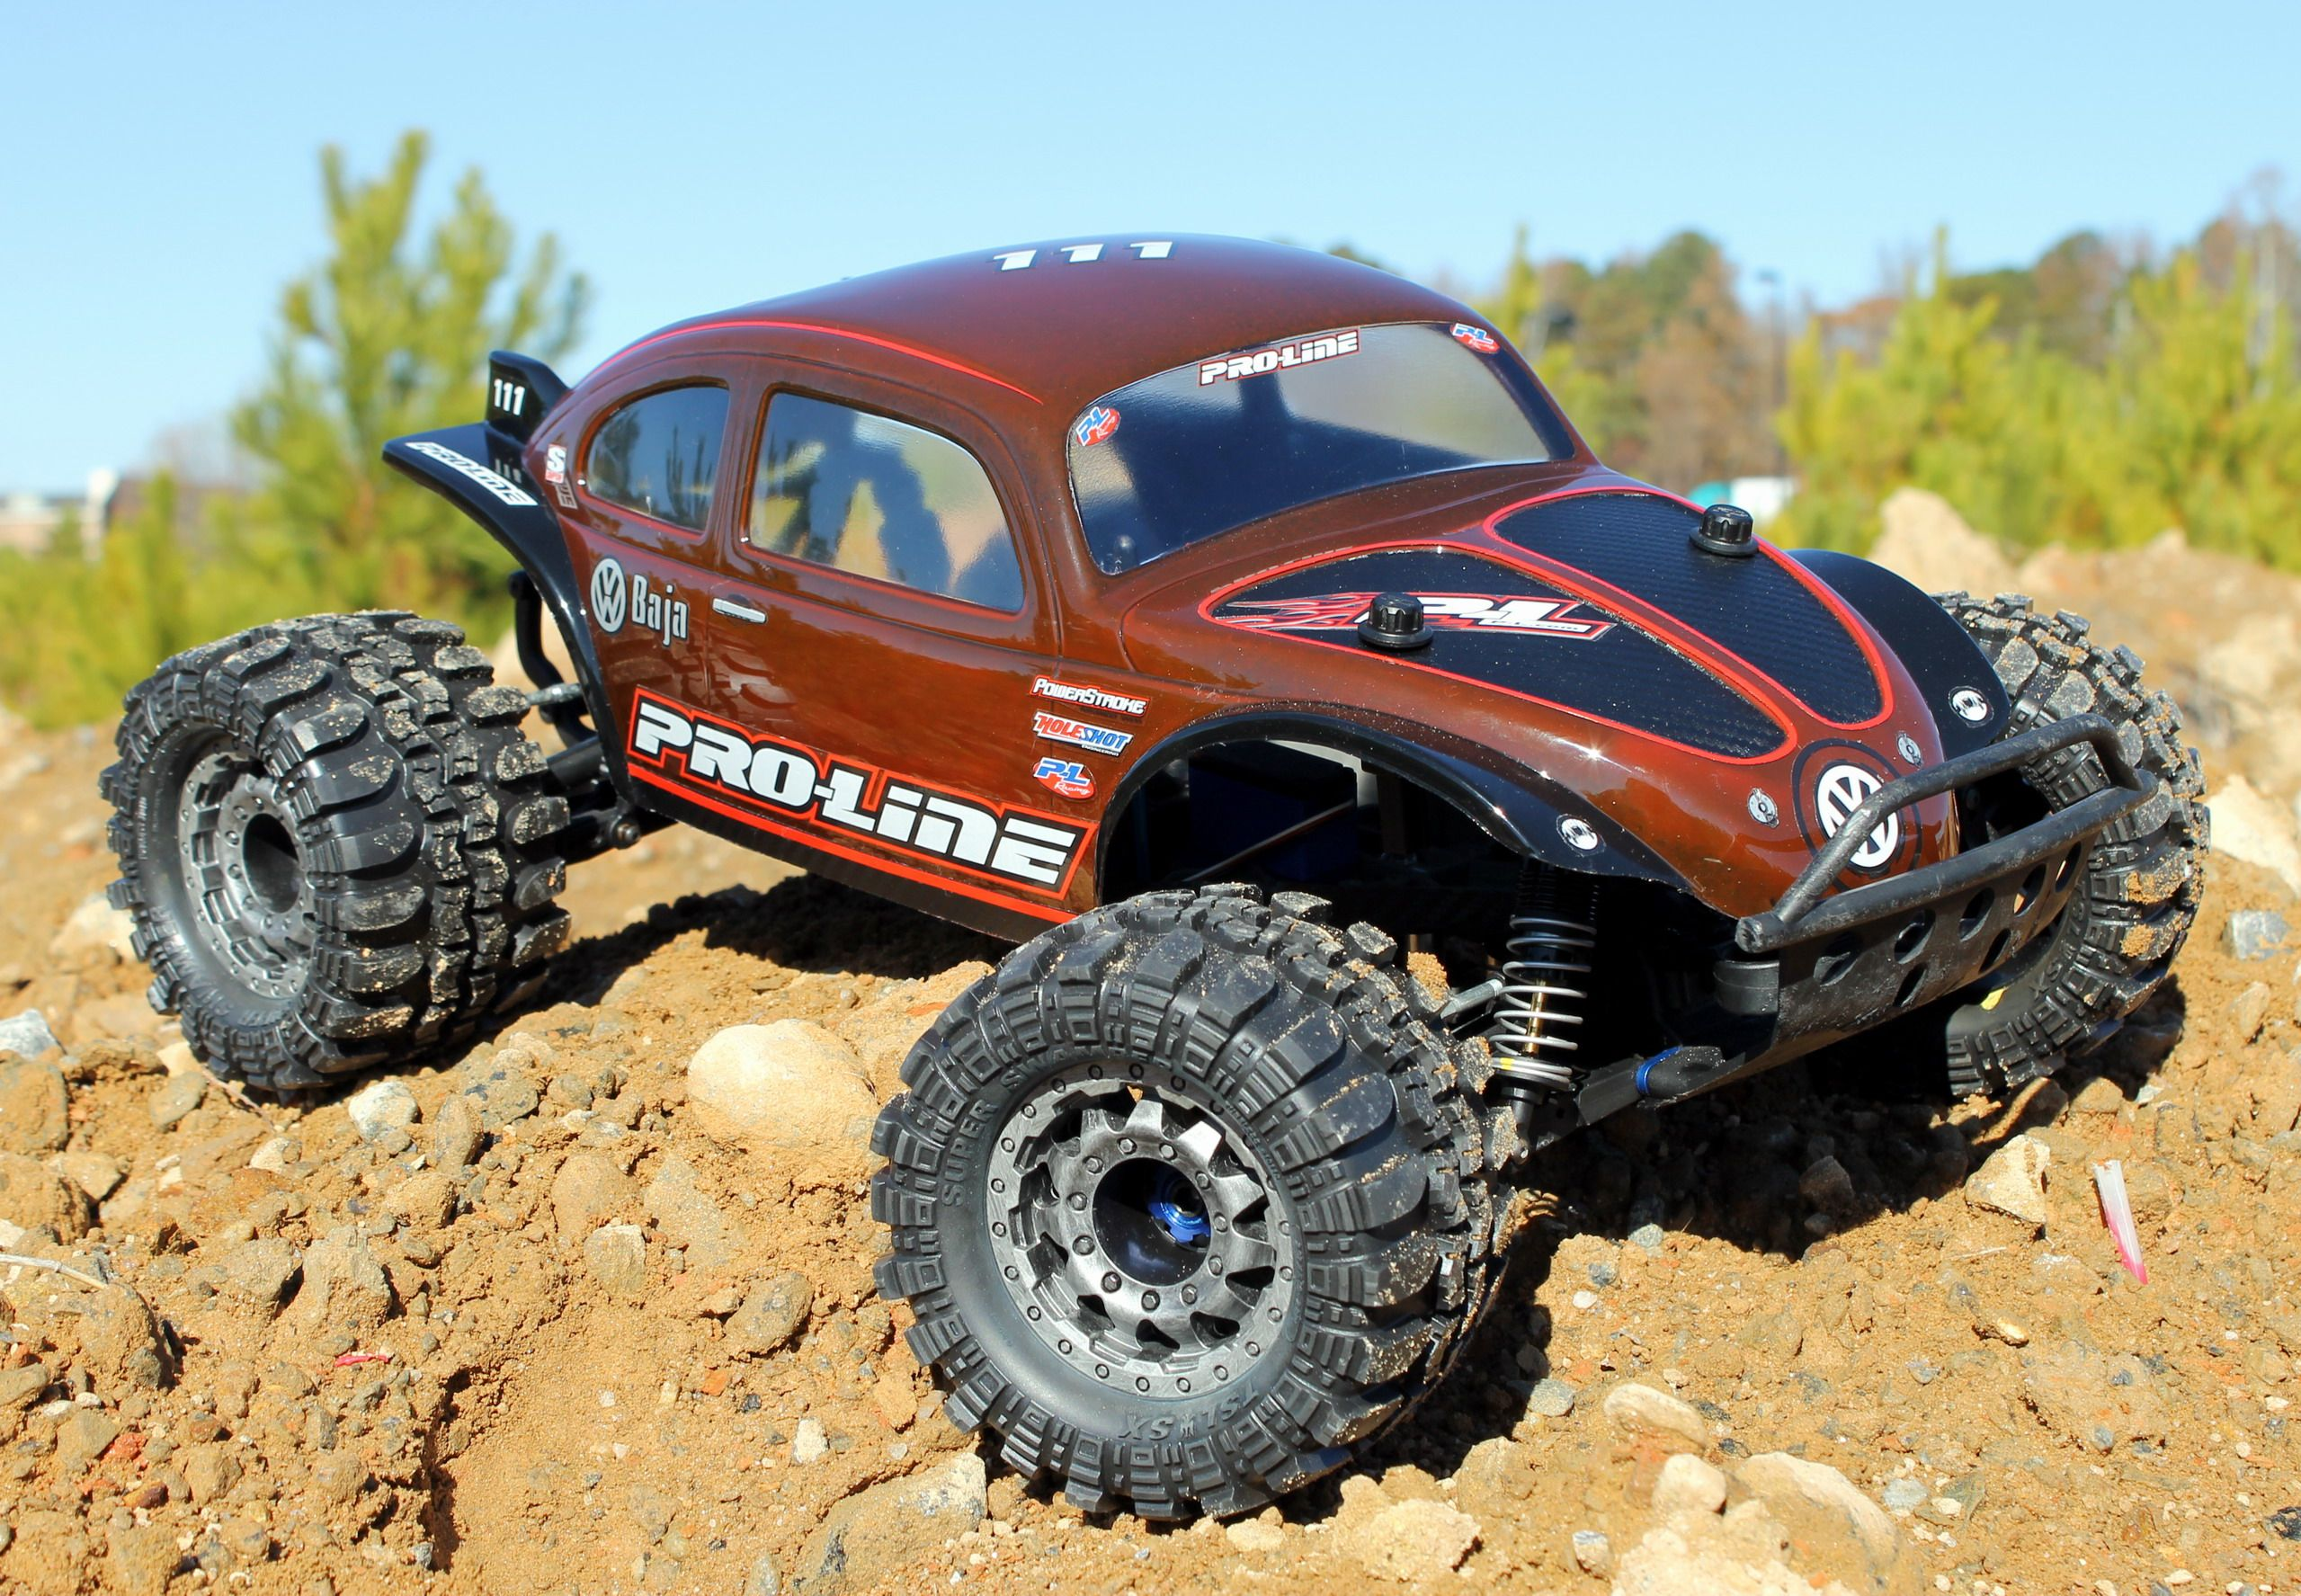 Pro Line Monster Baja Beetle Transformation for the Original Traxxas Slash 4X4